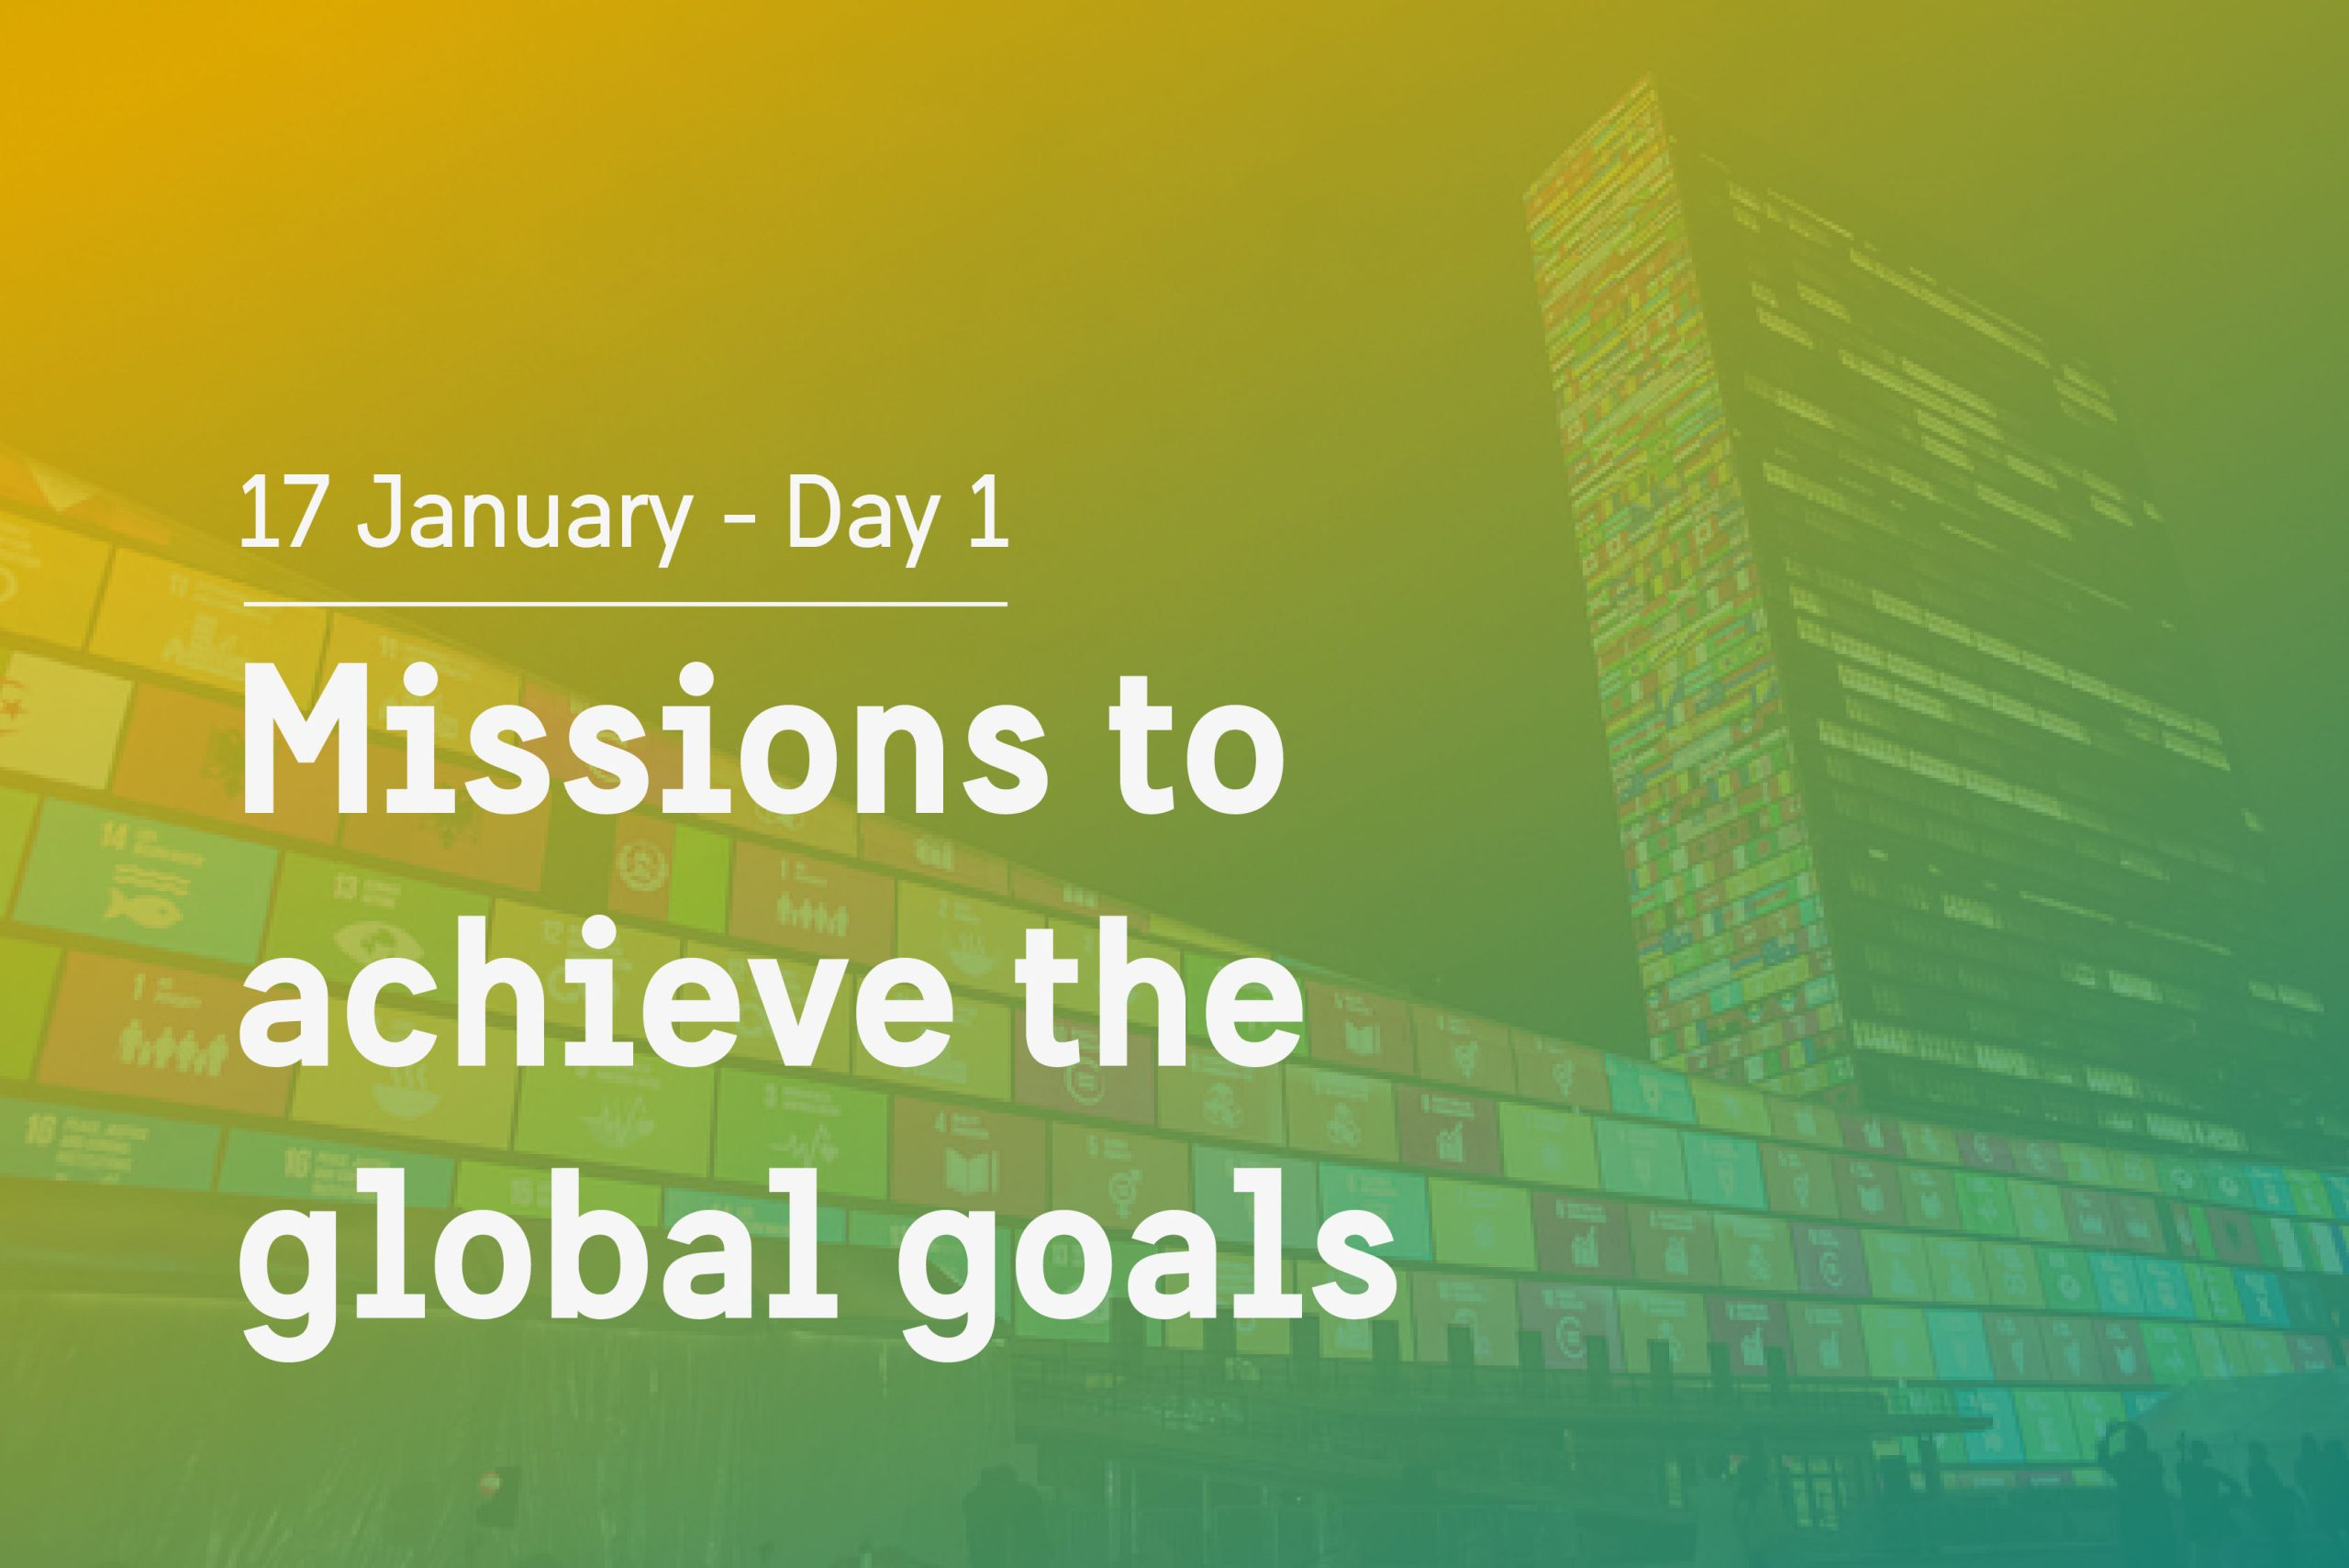 Day one theme: Missions to achieve the Global Goals